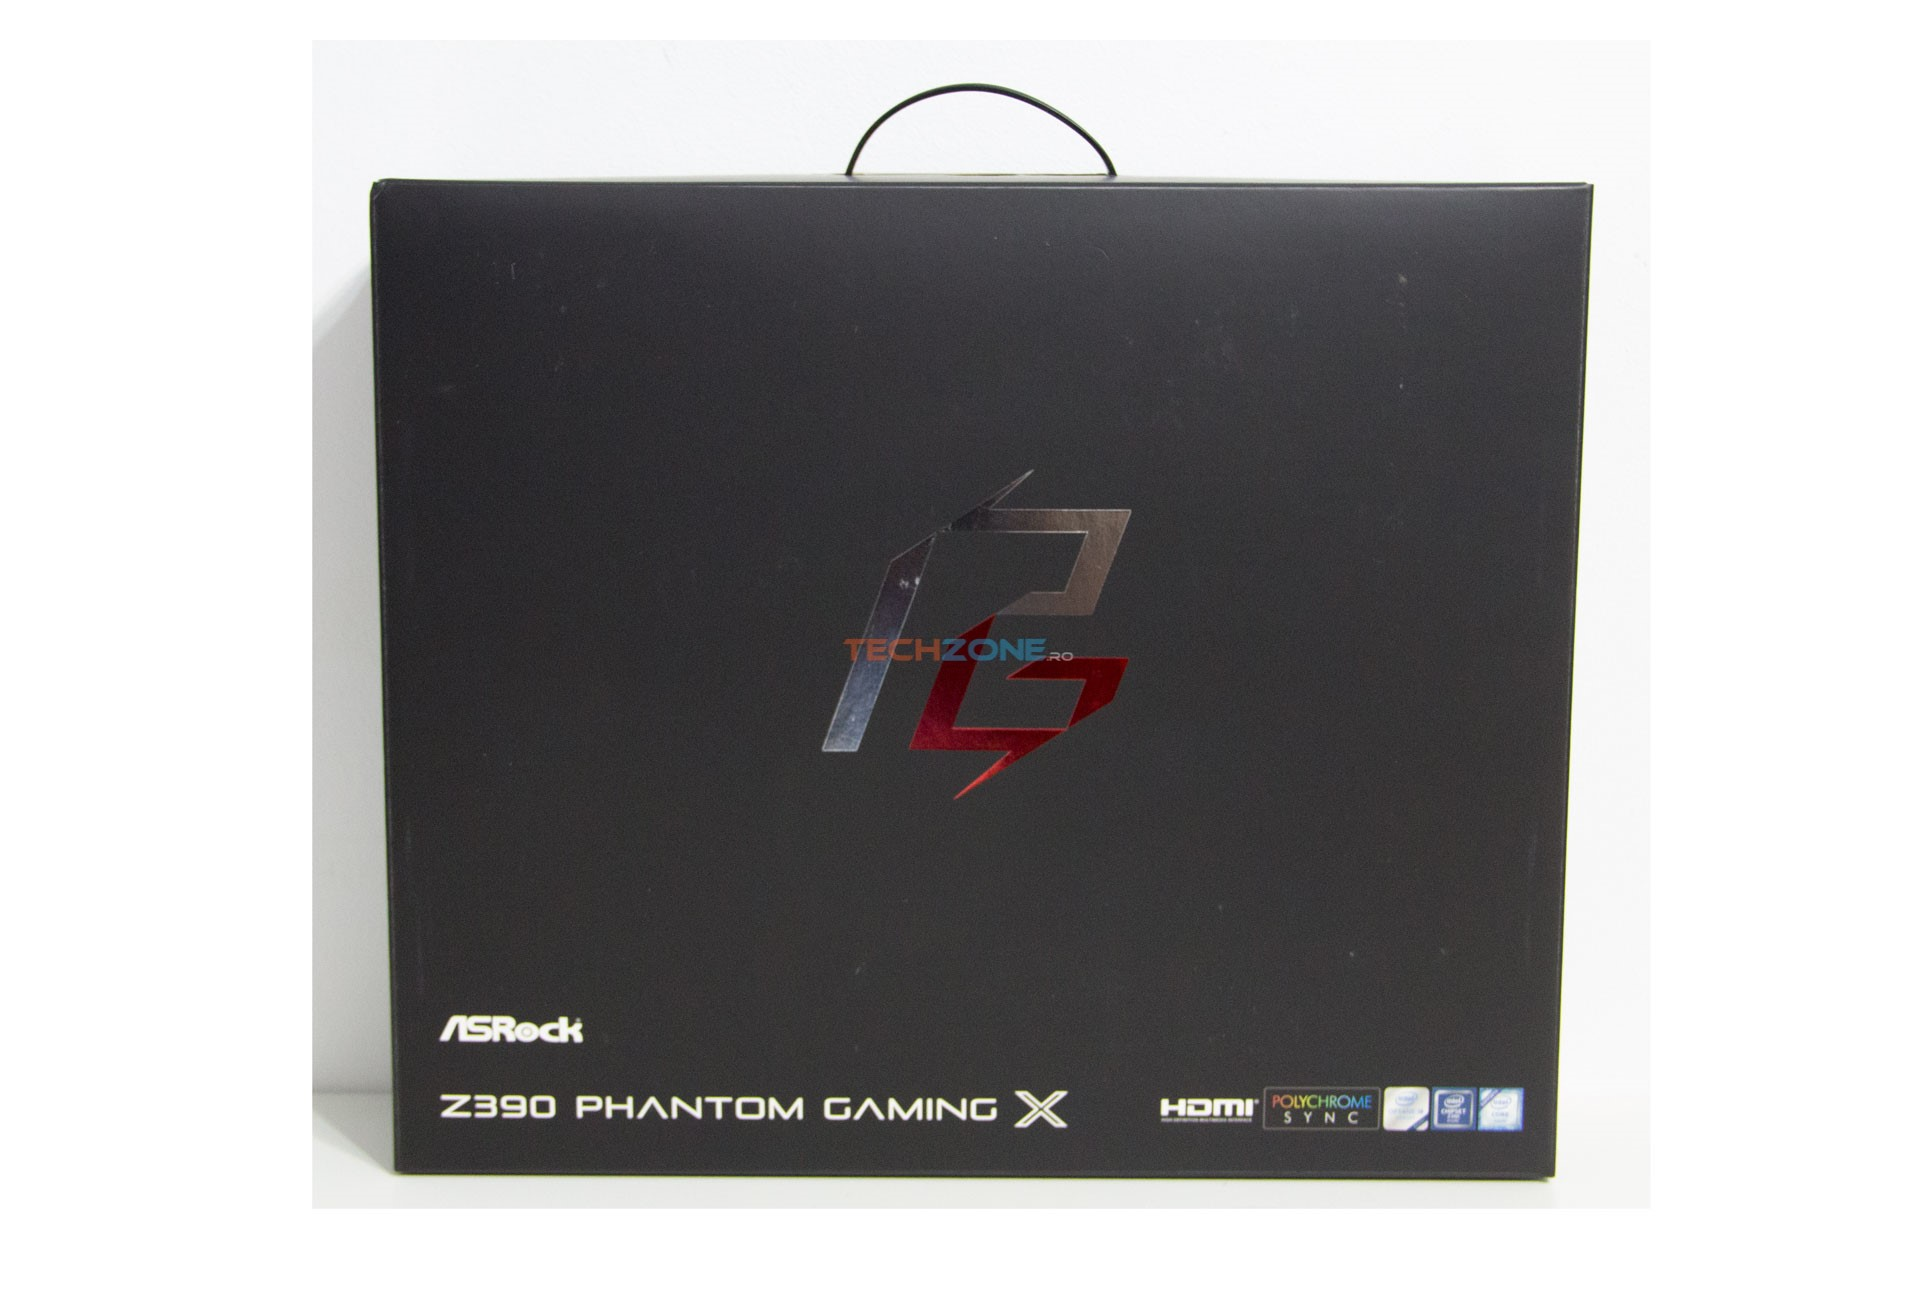 ASRock Z390 Phantom Gaming X set